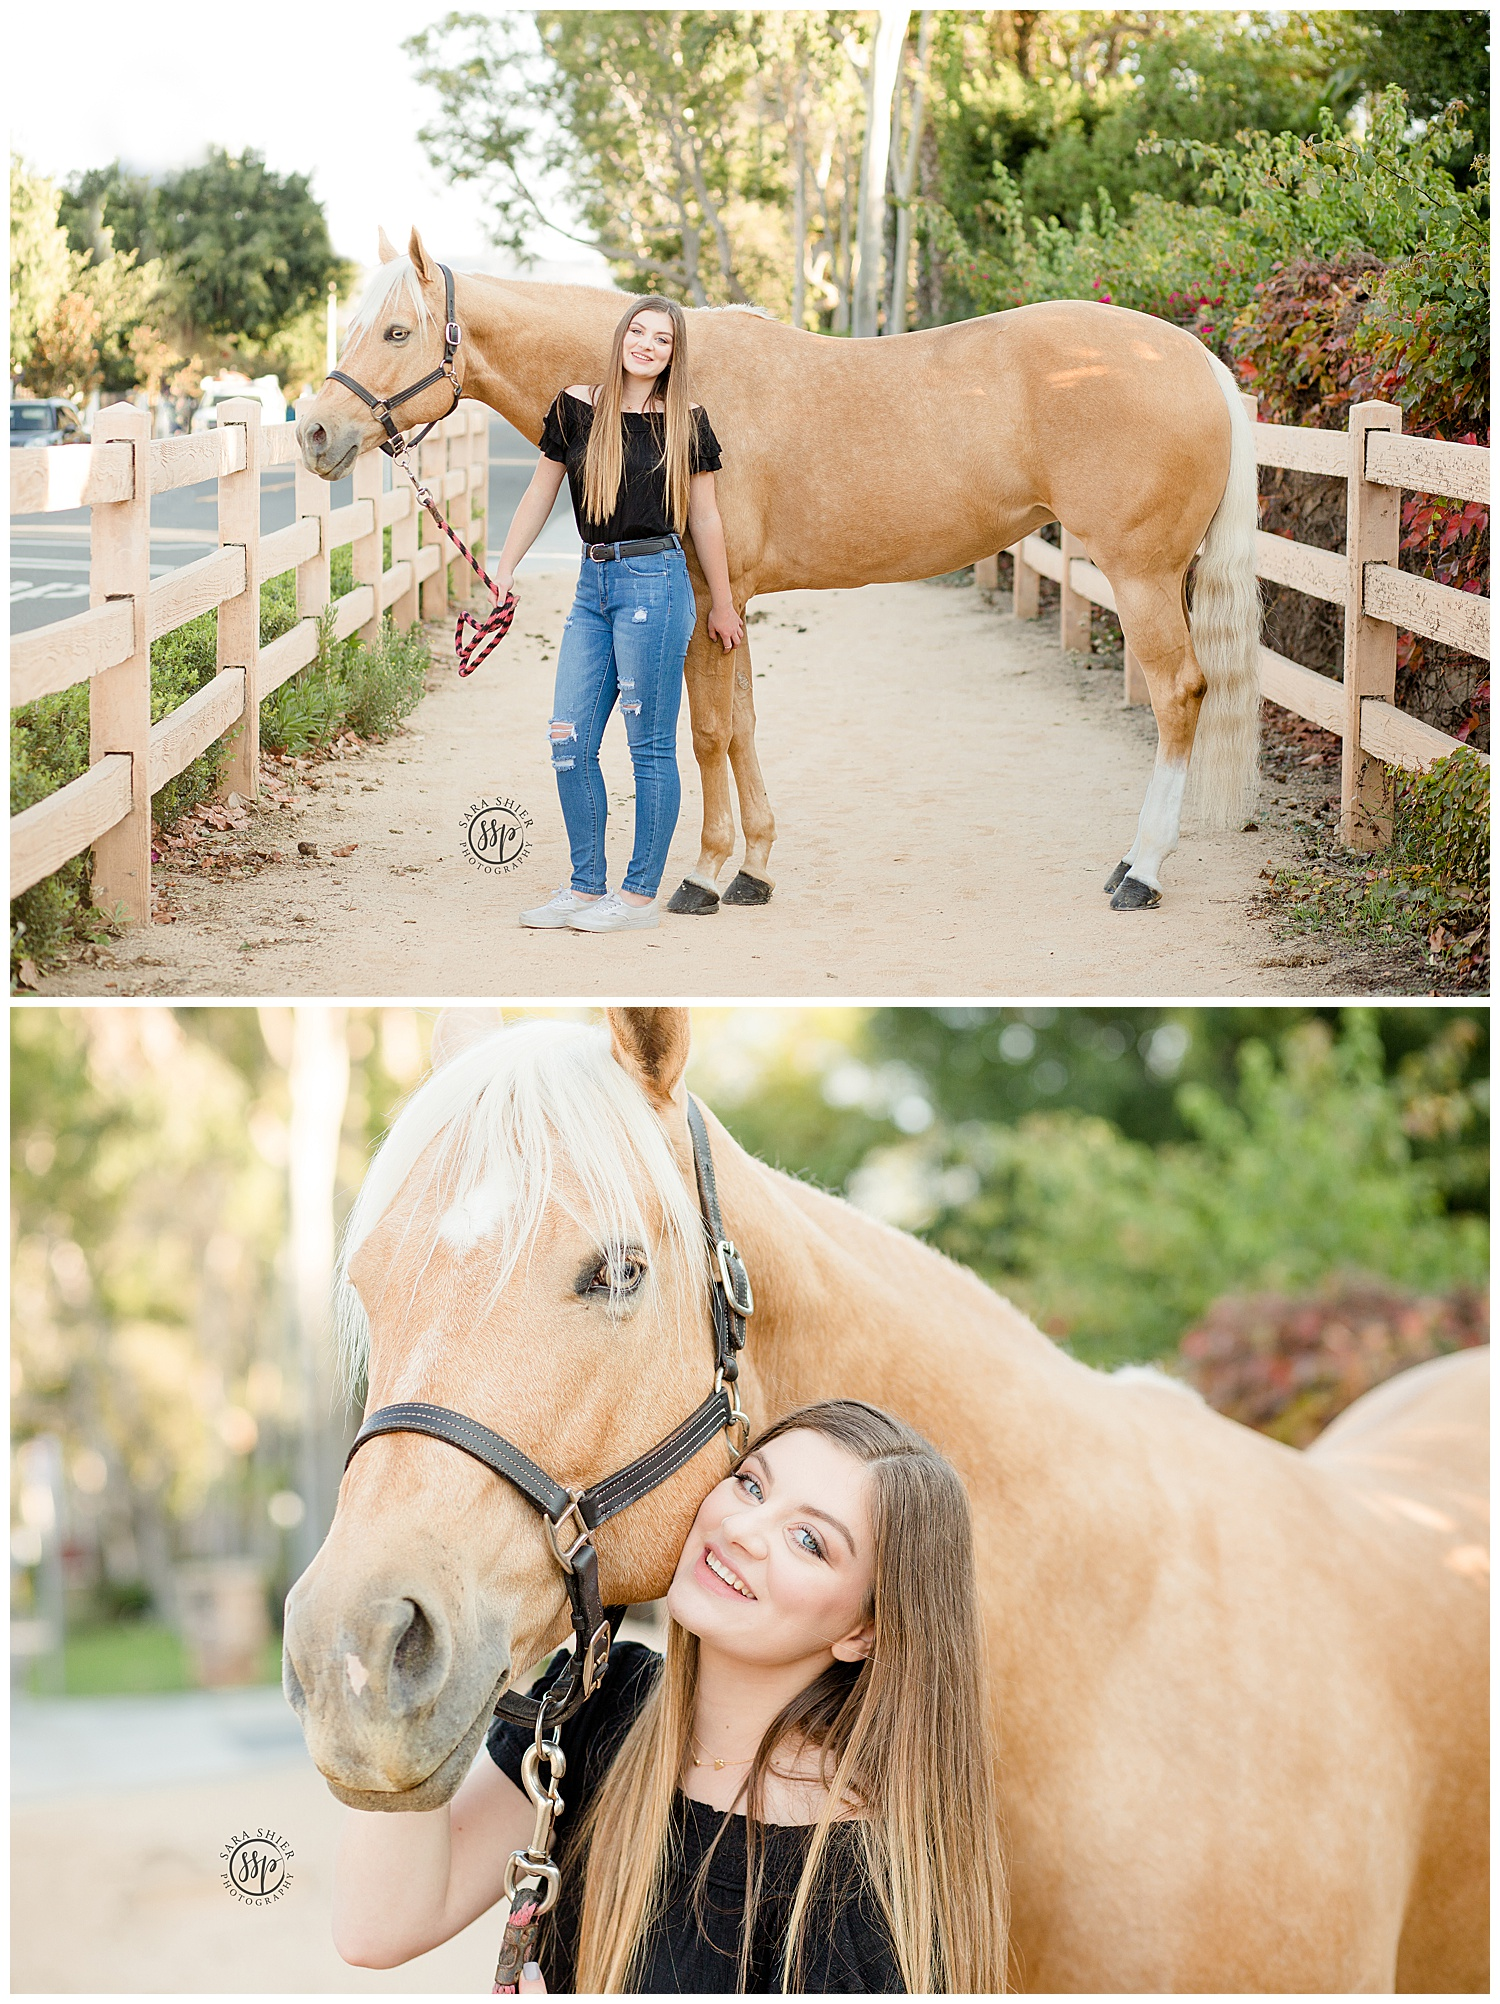 Black Background Horse Rider Equine Photographer Southern California Sara Shier Photography SoCal Equestrian Cowgirl_0375.jpg